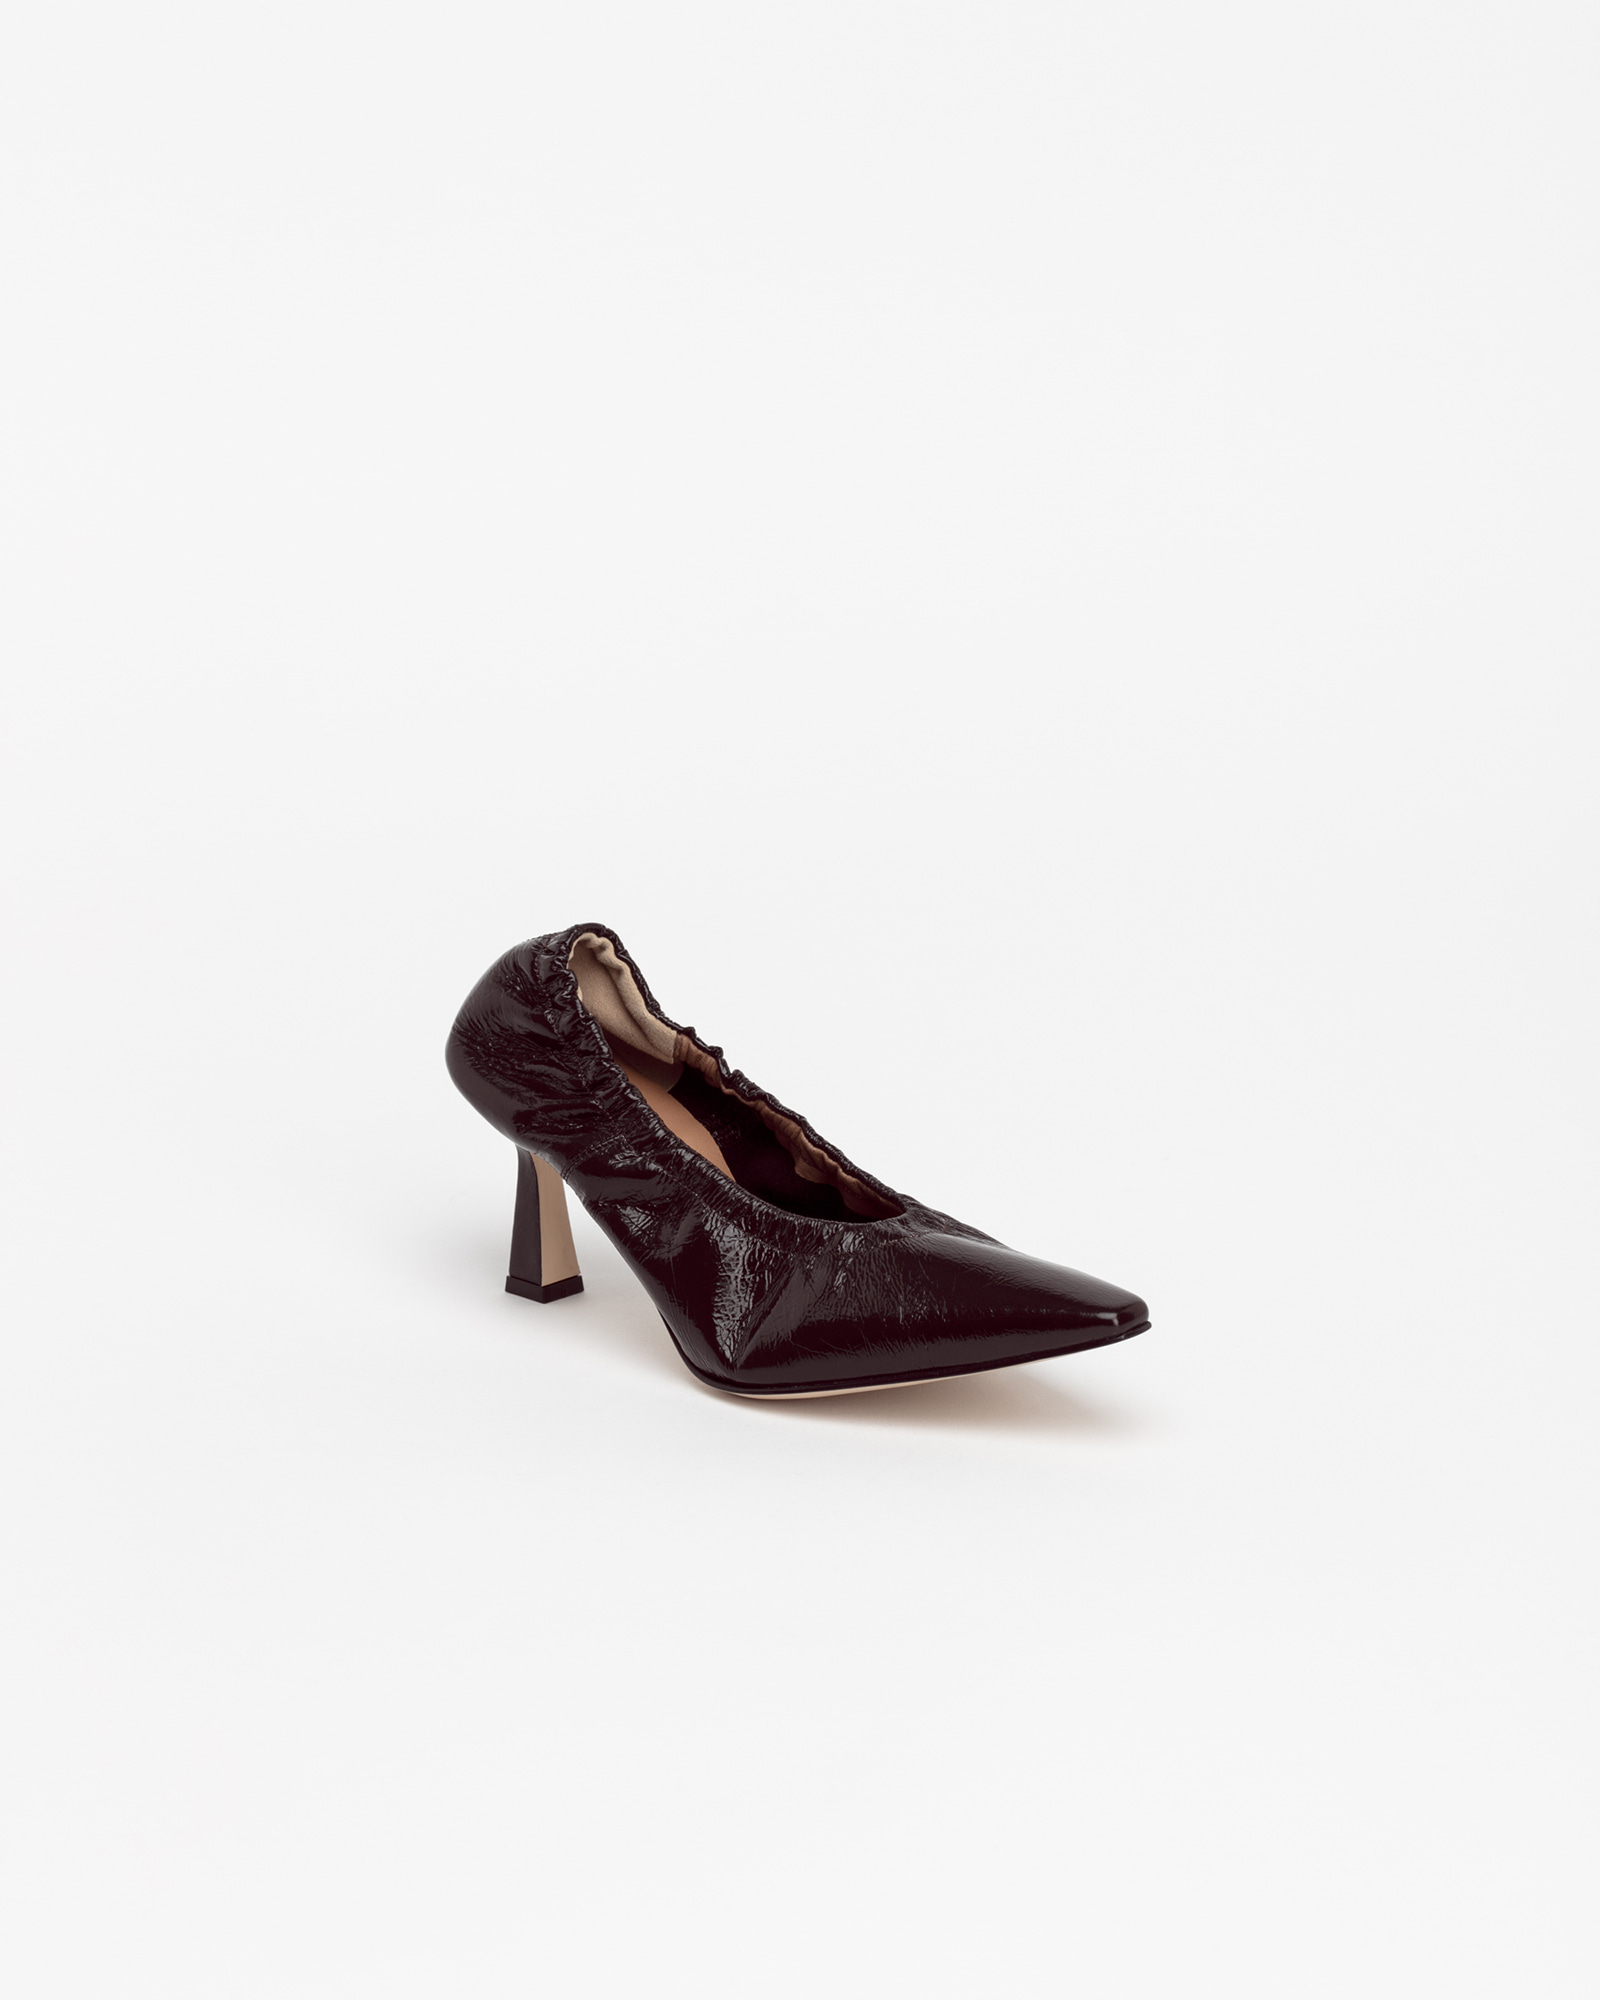 Arnaud Soft Pumps in Wrinkled Brown